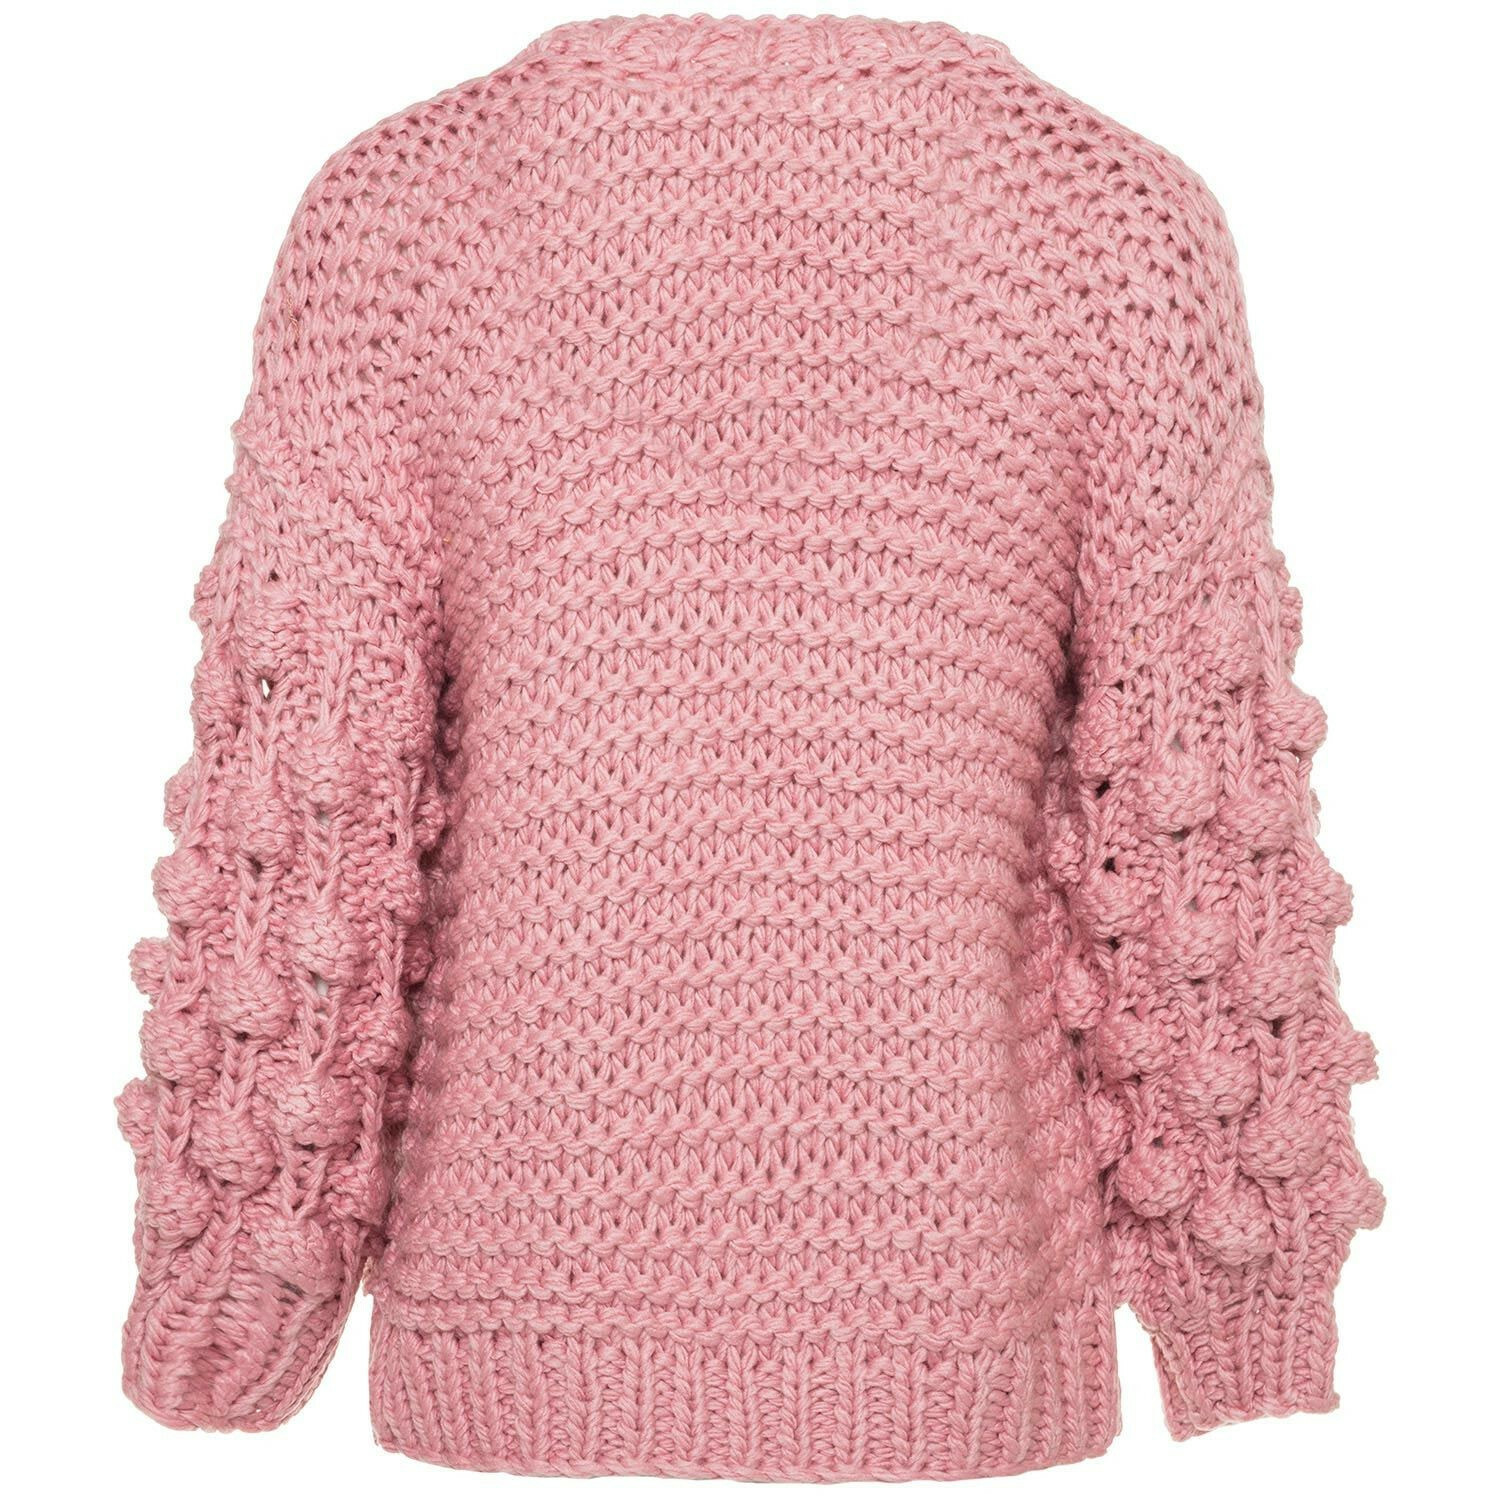 COZY KNITTED PINK CARDIGAN